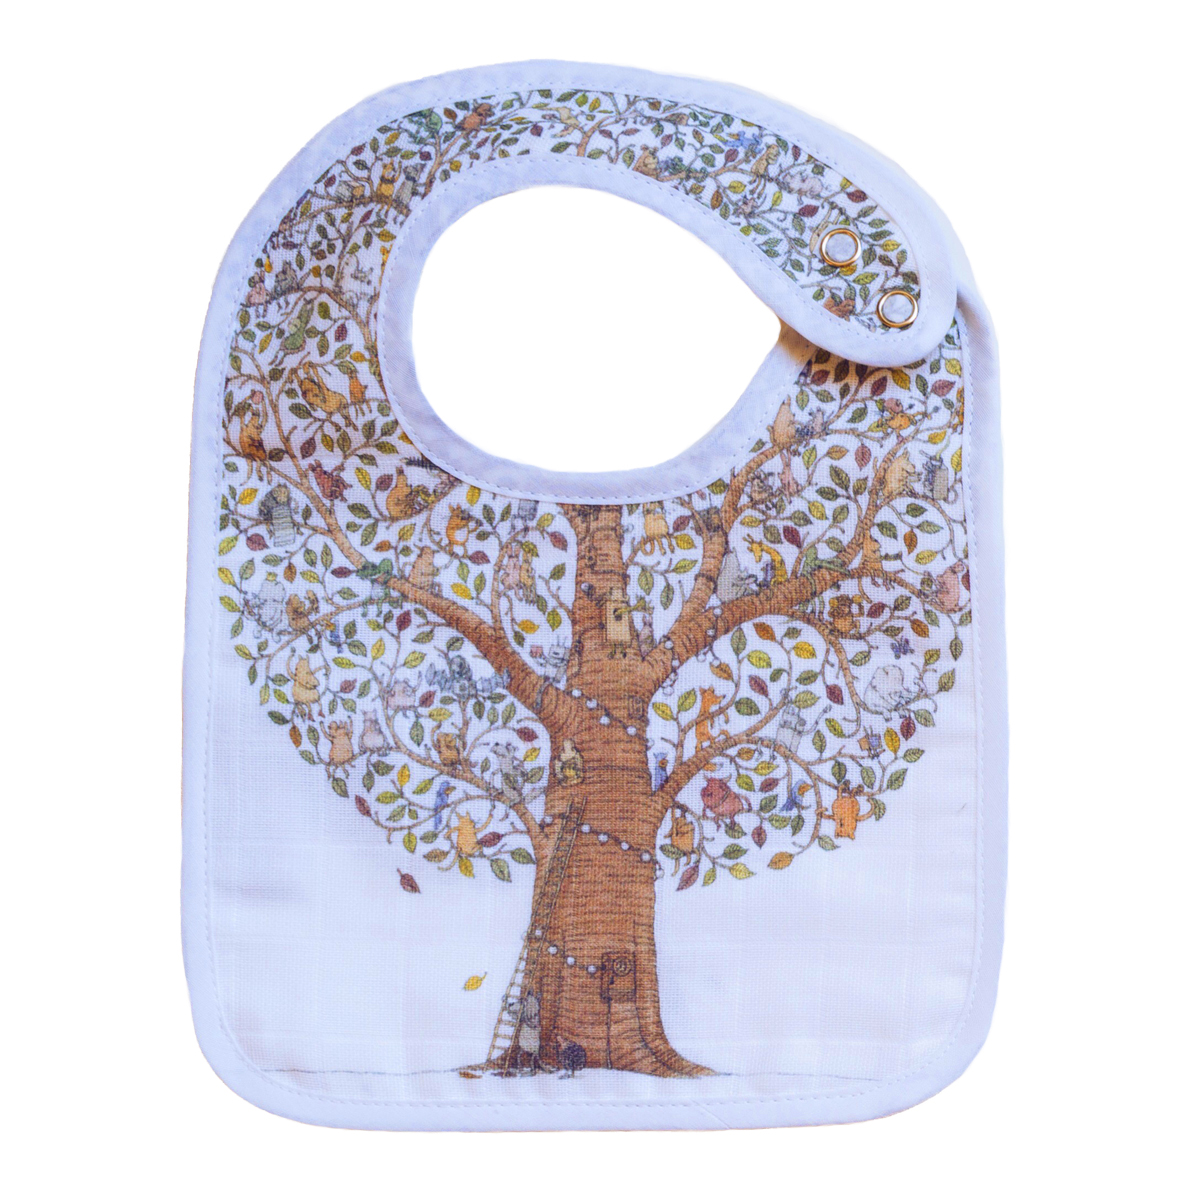 Atelier Choux Small Bib - friends and family tree